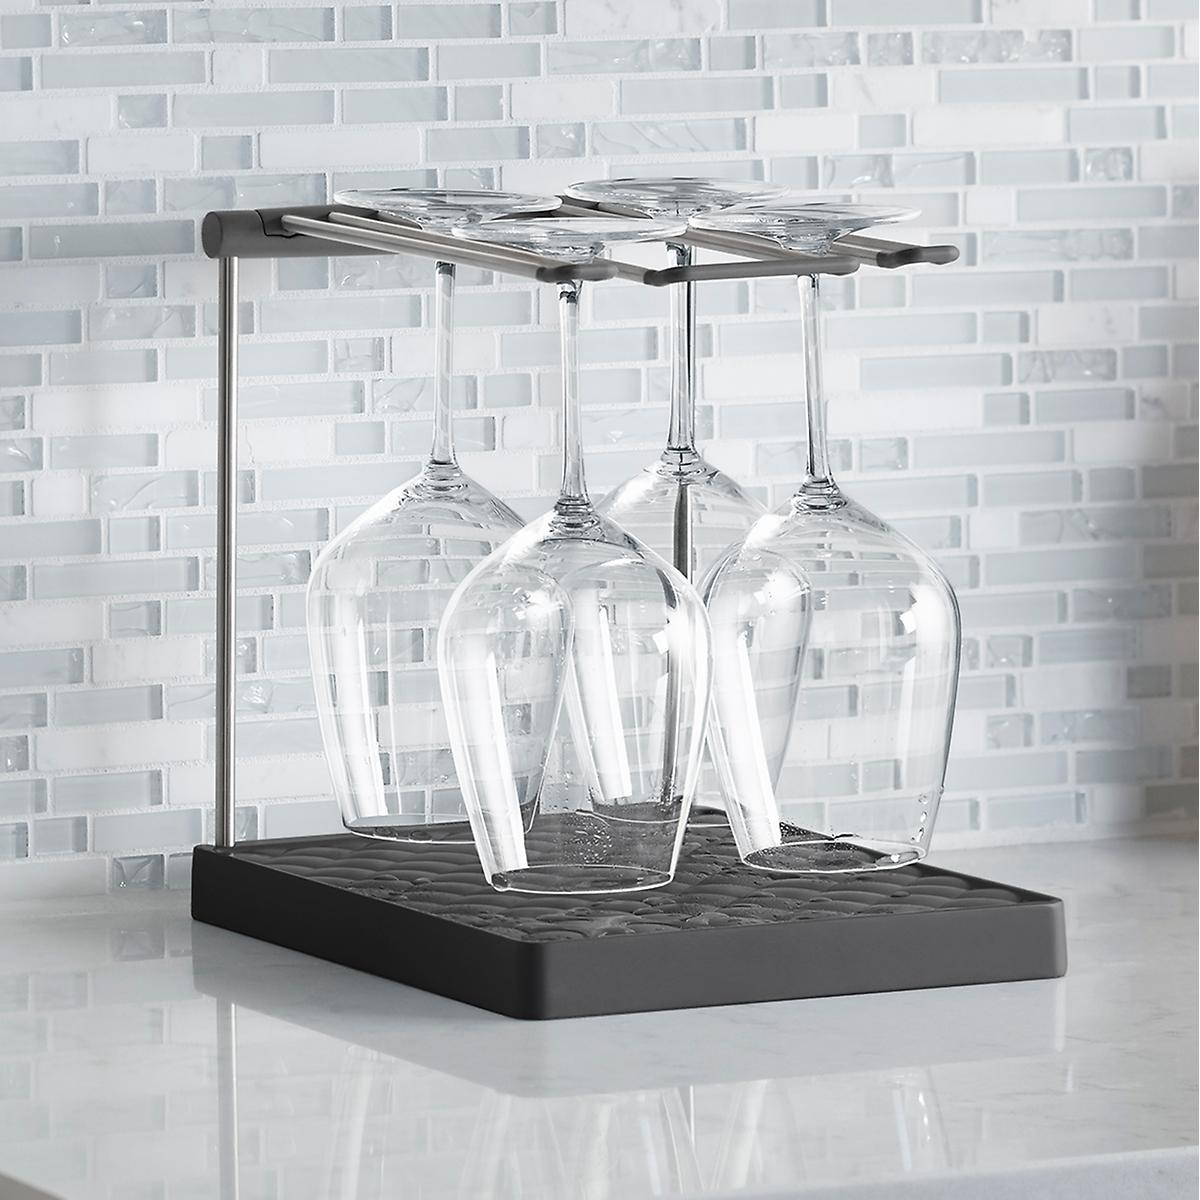 kohler wine glass drying rack - Kohler Sple Dienstprogramm Rack